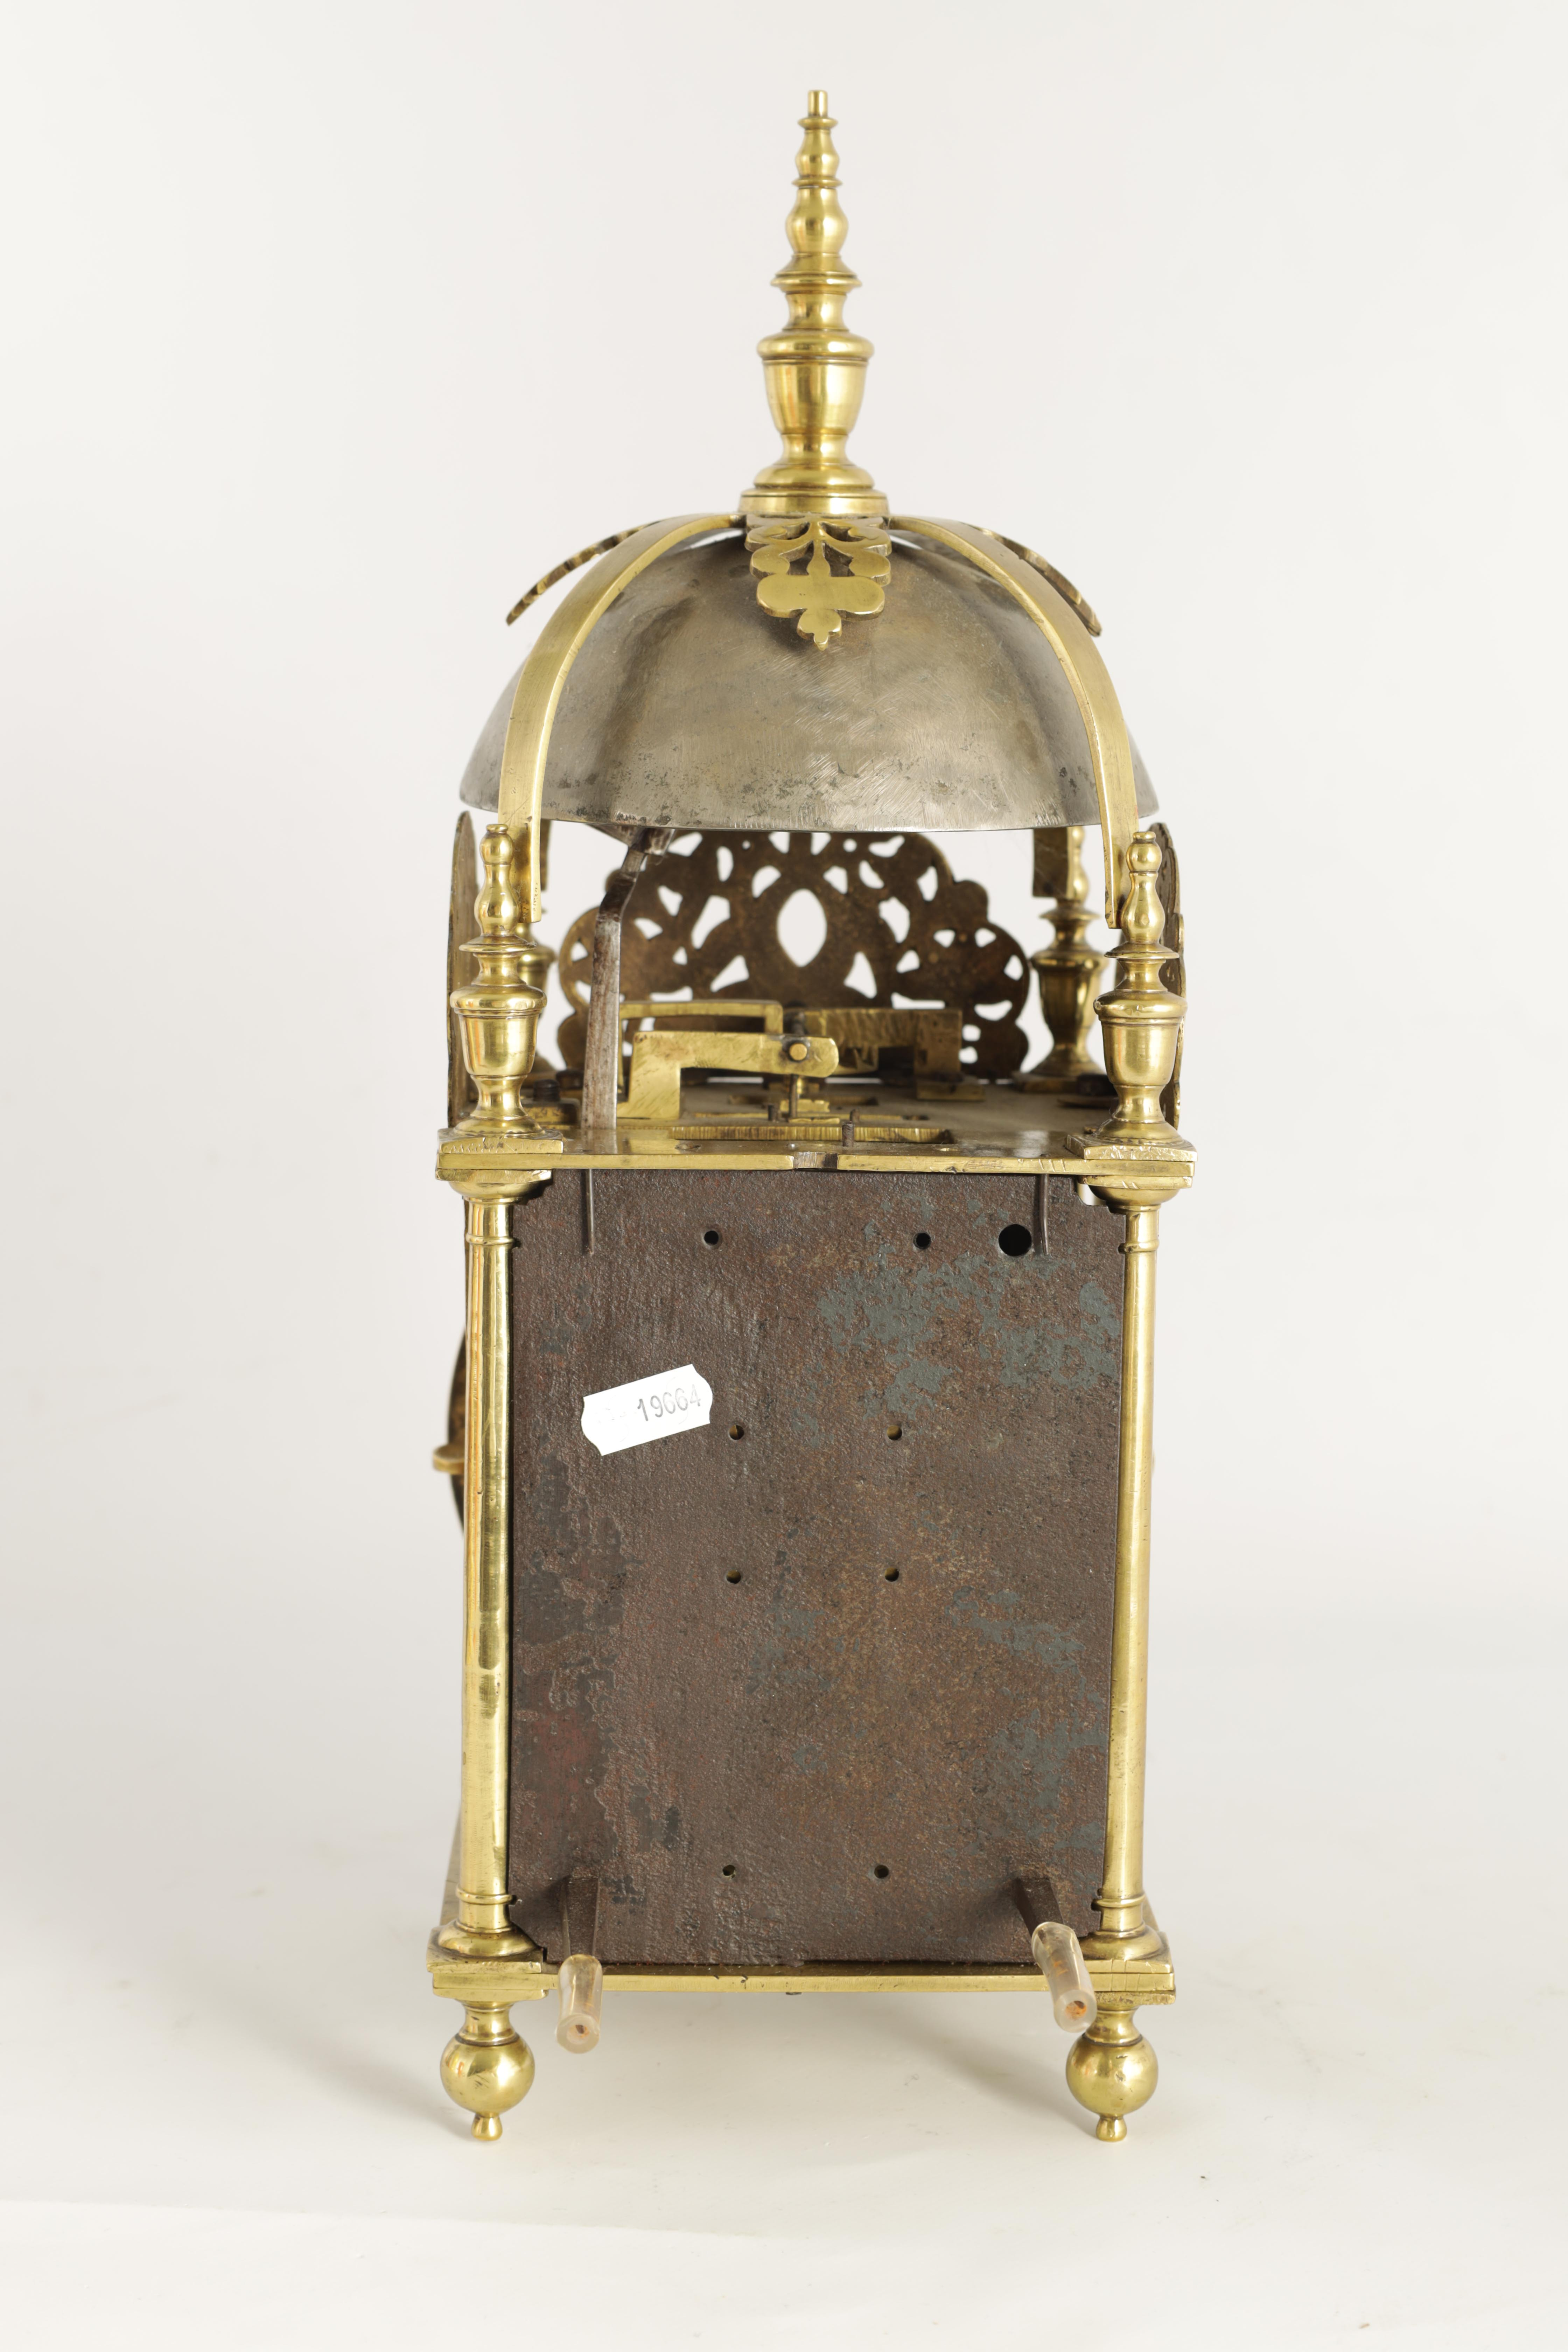 A FINE CHARLES II BRASS LANTERN CLOCKthe posted frame with side doors, engraved fretwork - Image 5 of 9